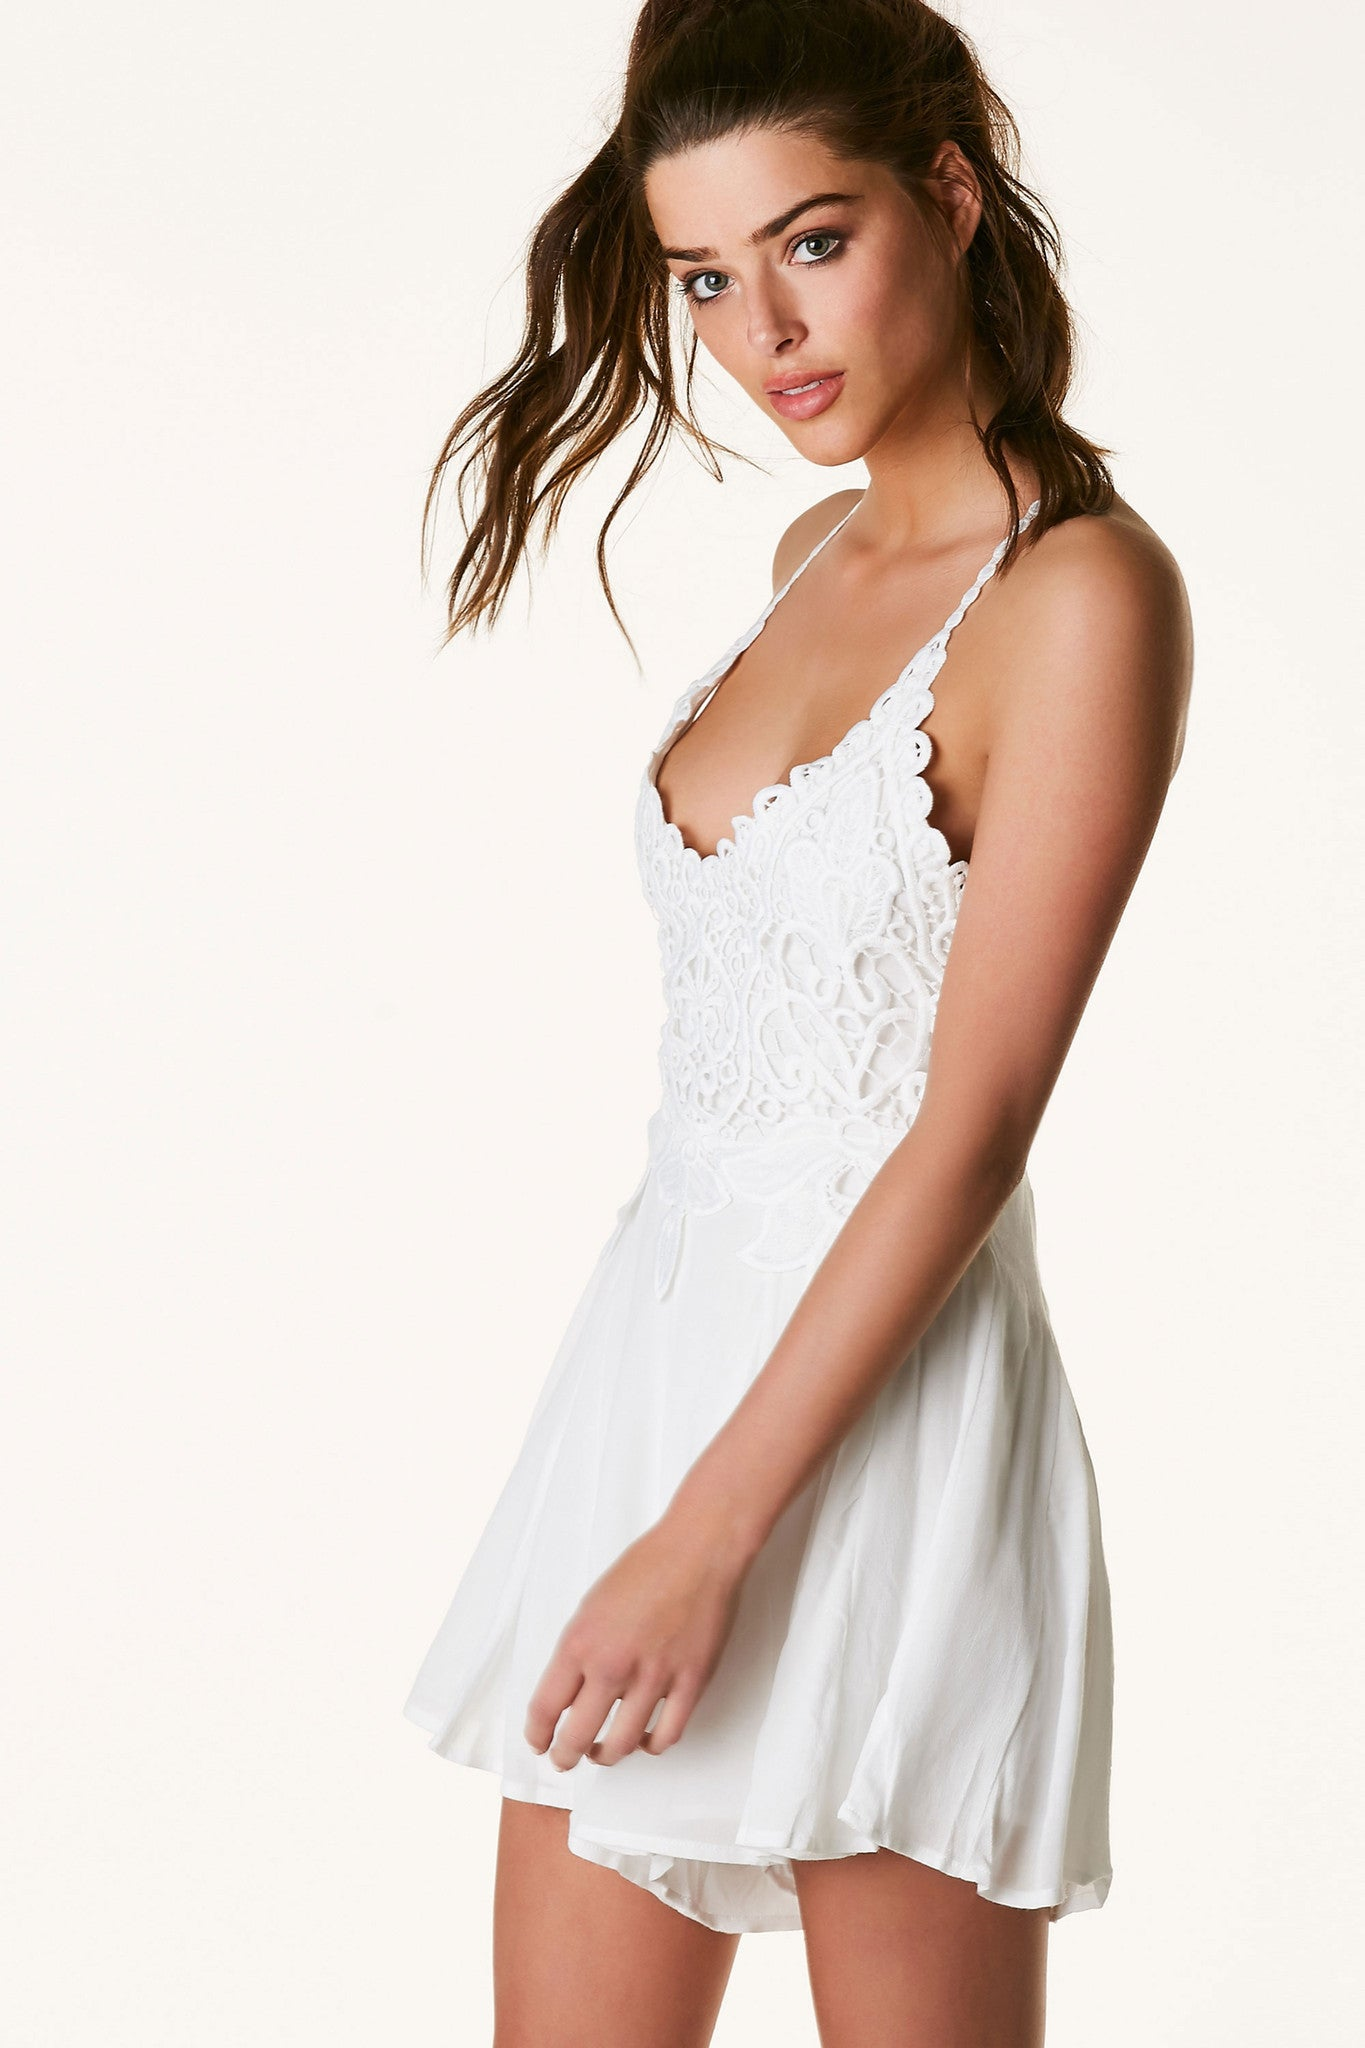 Strappy V-neck romper with contrast crochet detailing at top. Fully lined with open back with ties for closure.